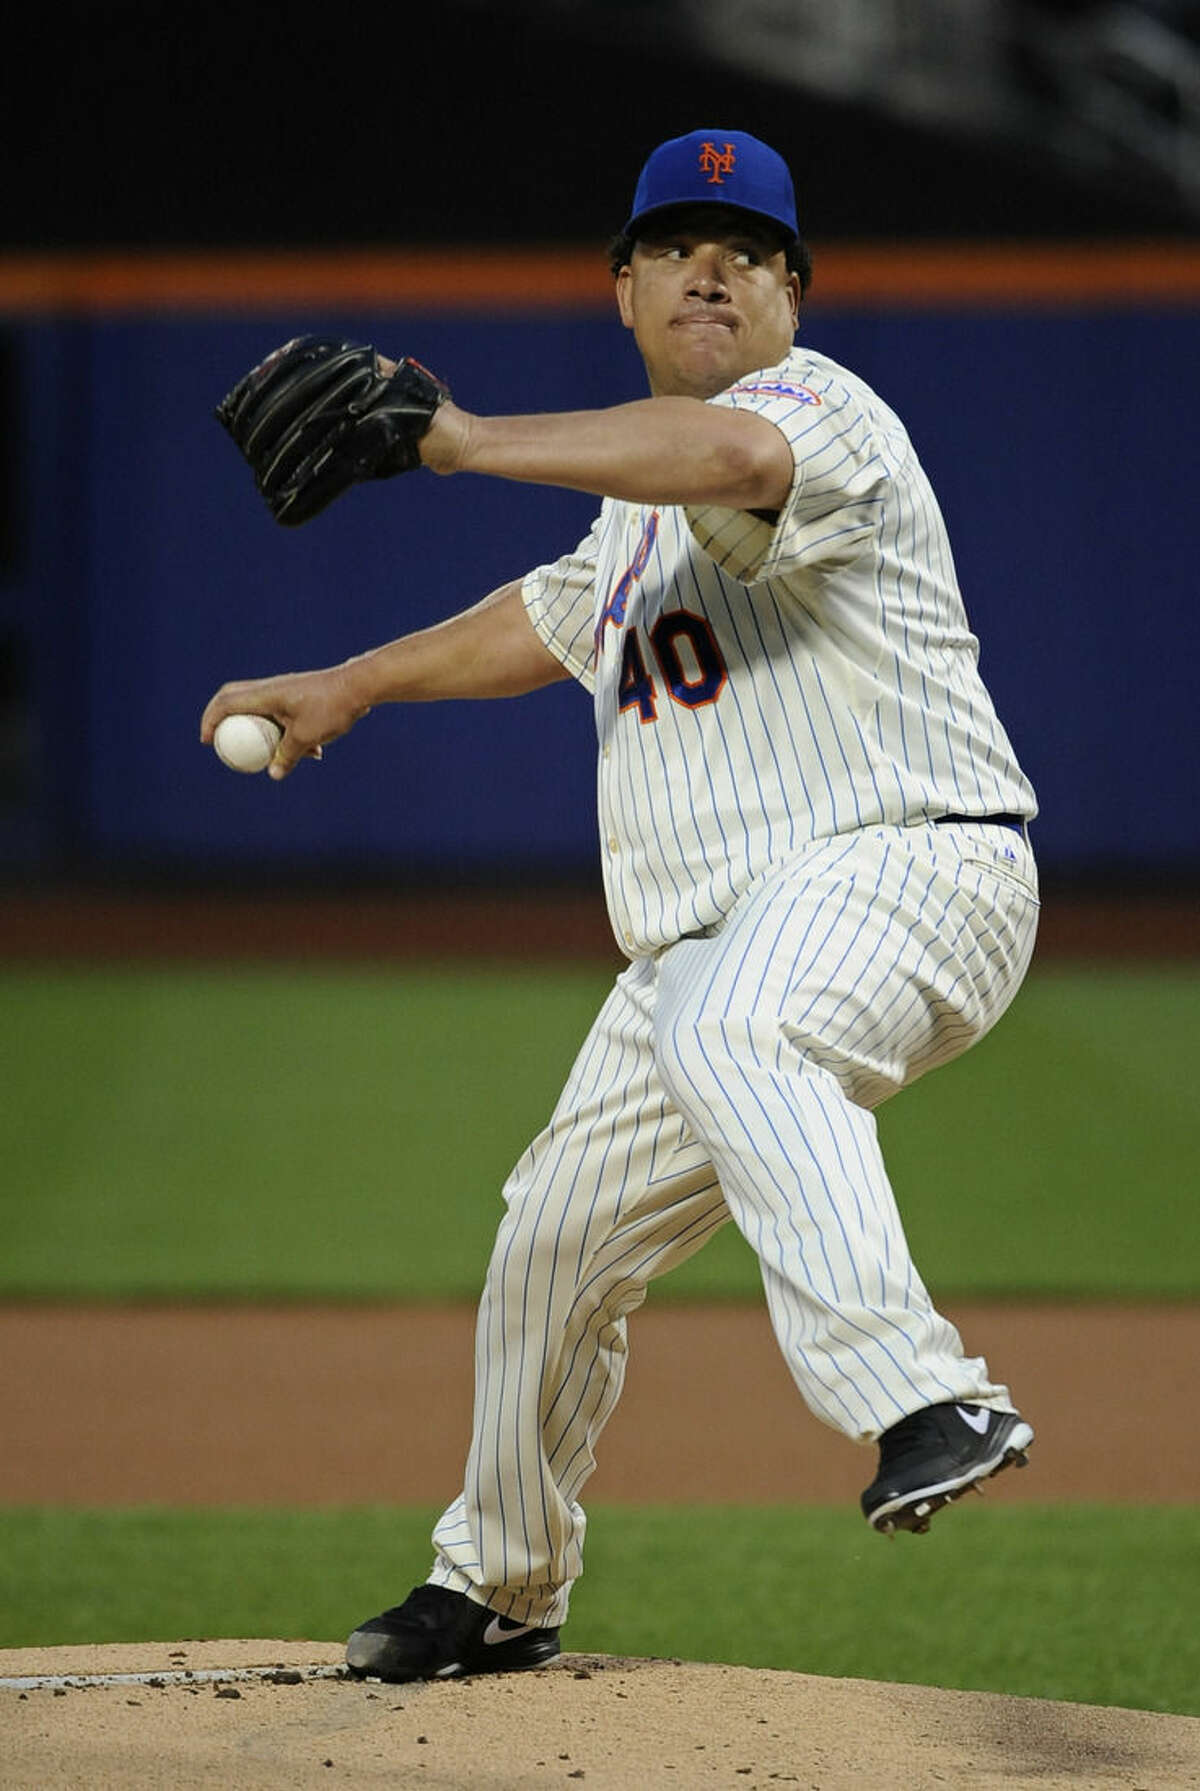 New York Mets starter Bartolo Colon pitches against the Philadelphia Phillies in the first inning of a baseball game at Citi Field on Saturday, Aug. 30, 2014, in New York. (AP Photo/Kathy Kmonicek)